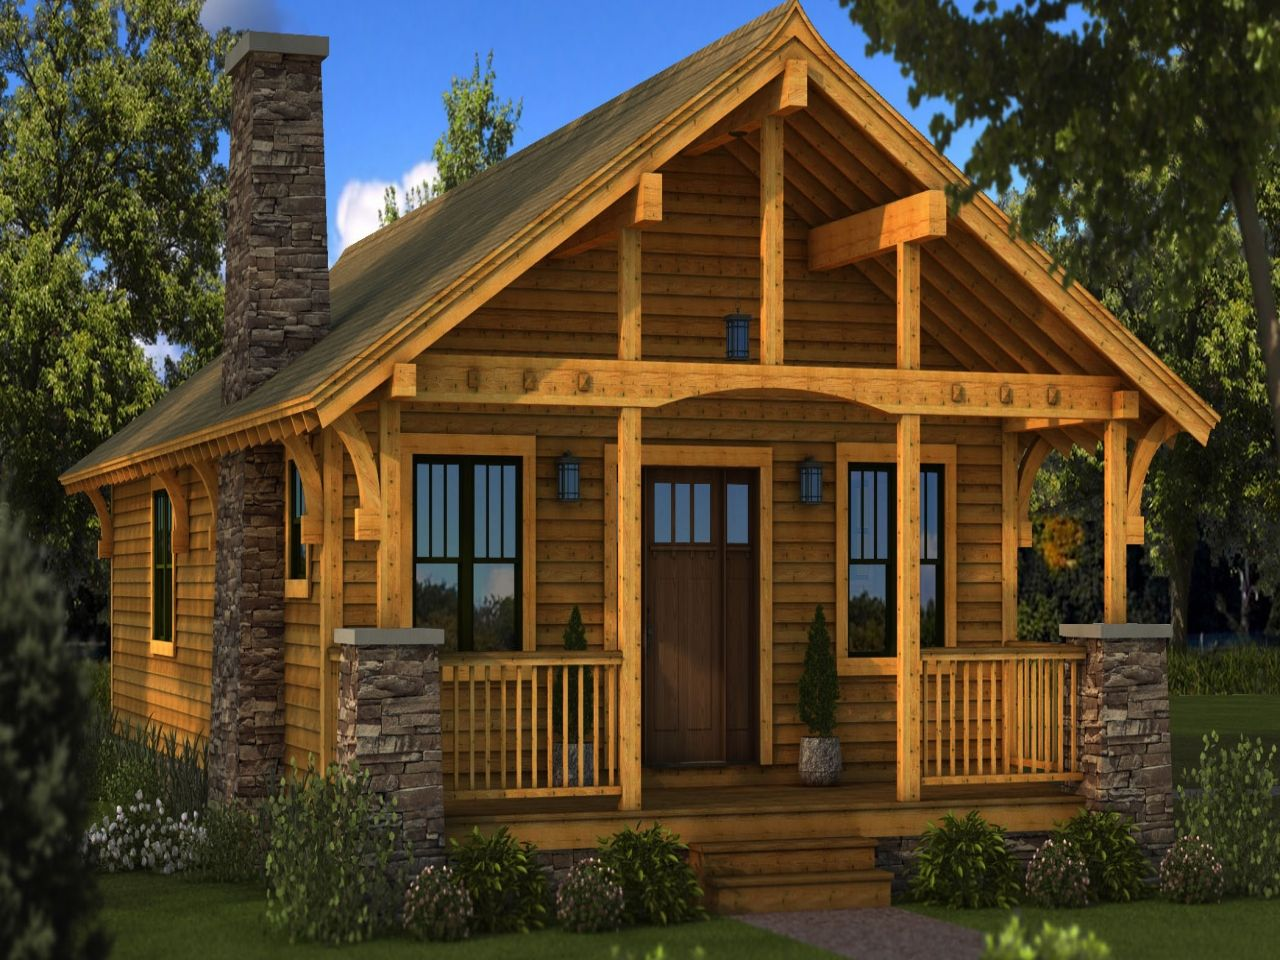 Small log cabin homes plans one story cabin plans for Small cabin design ideas